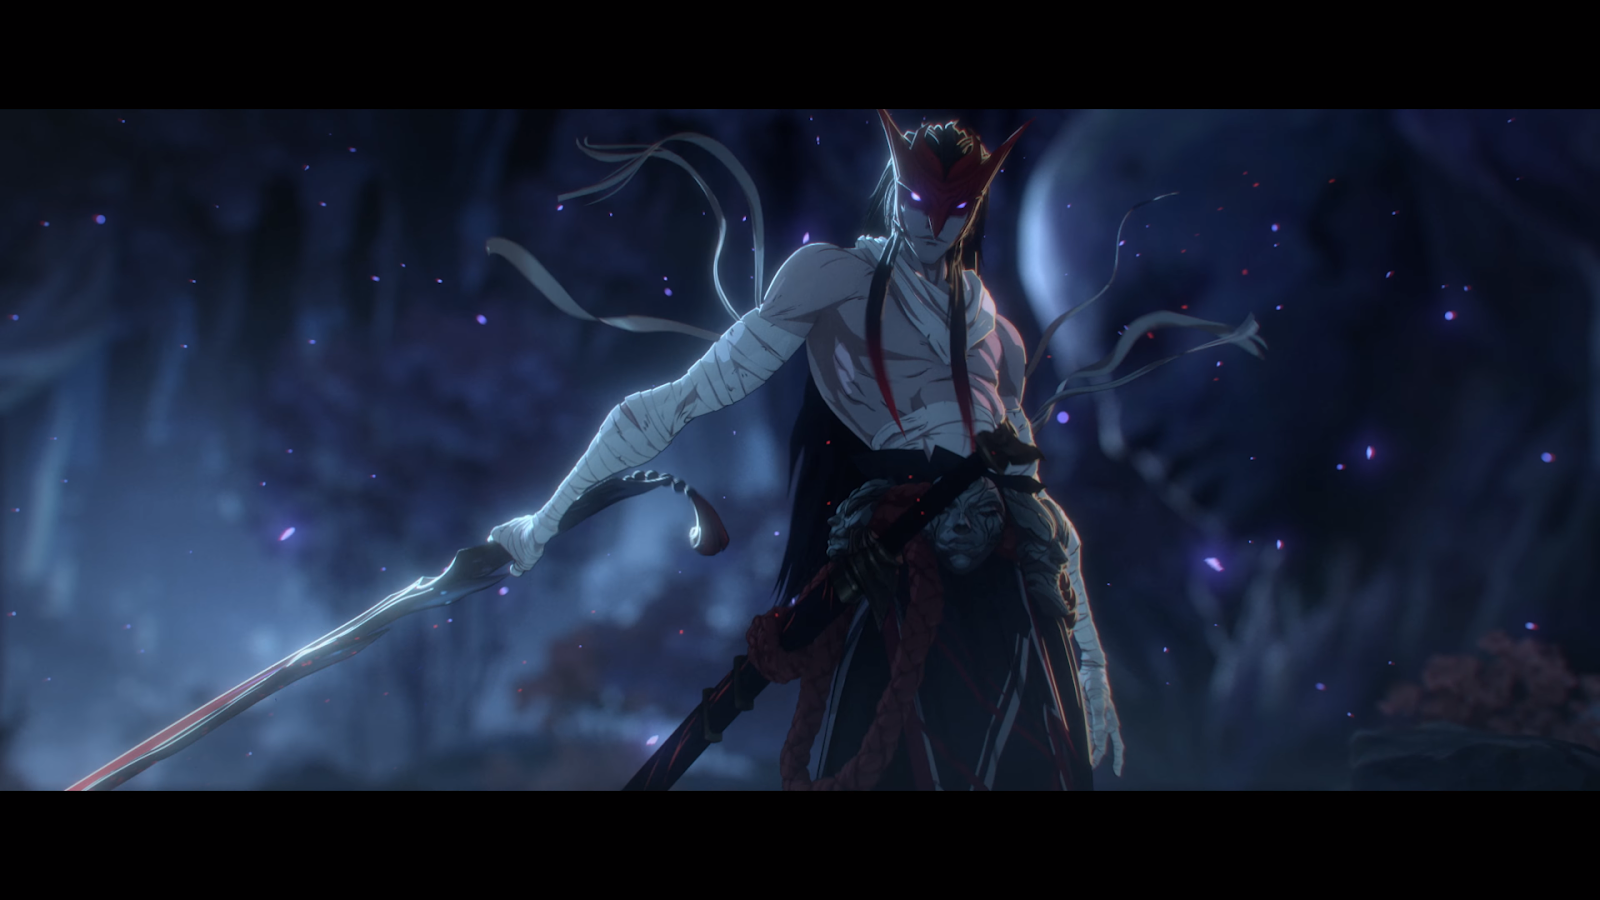 League Of Legends Yasuo Wallpaper 1600x900 Download Hd Wallpaper Wallpapertip